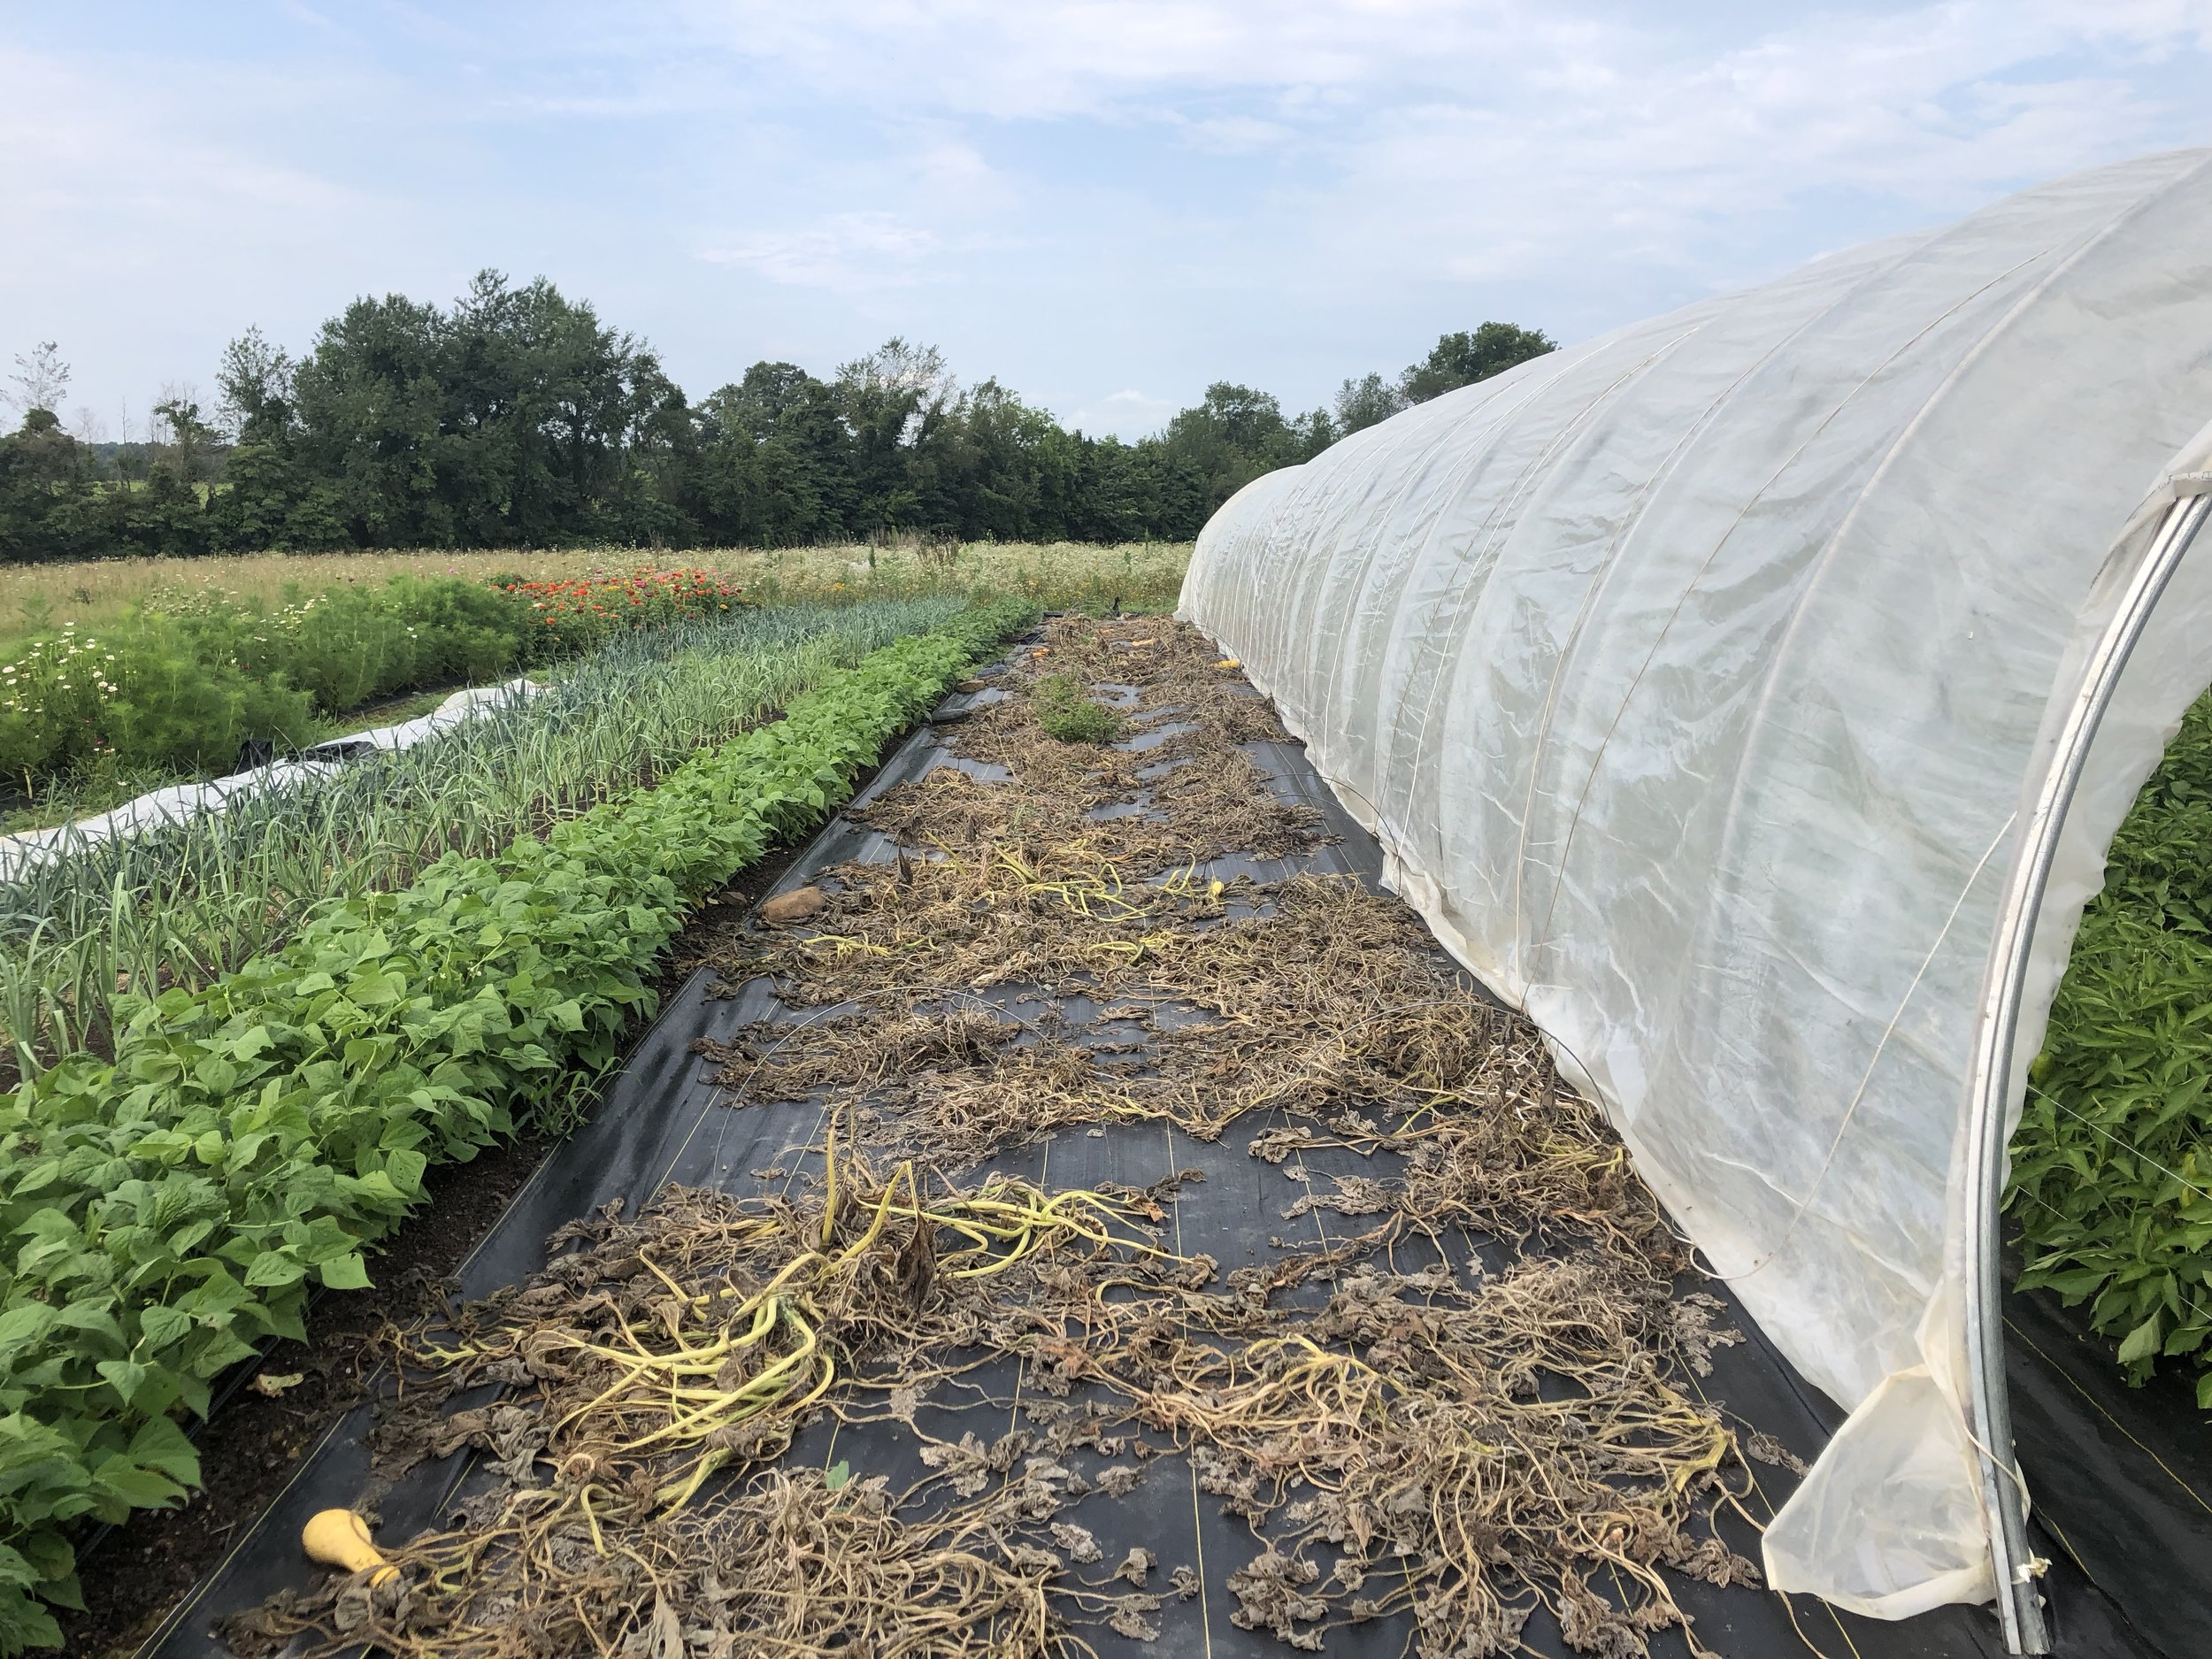 Our first planting of squash, finally decimated from the rain. Our second planting is coming on just in time